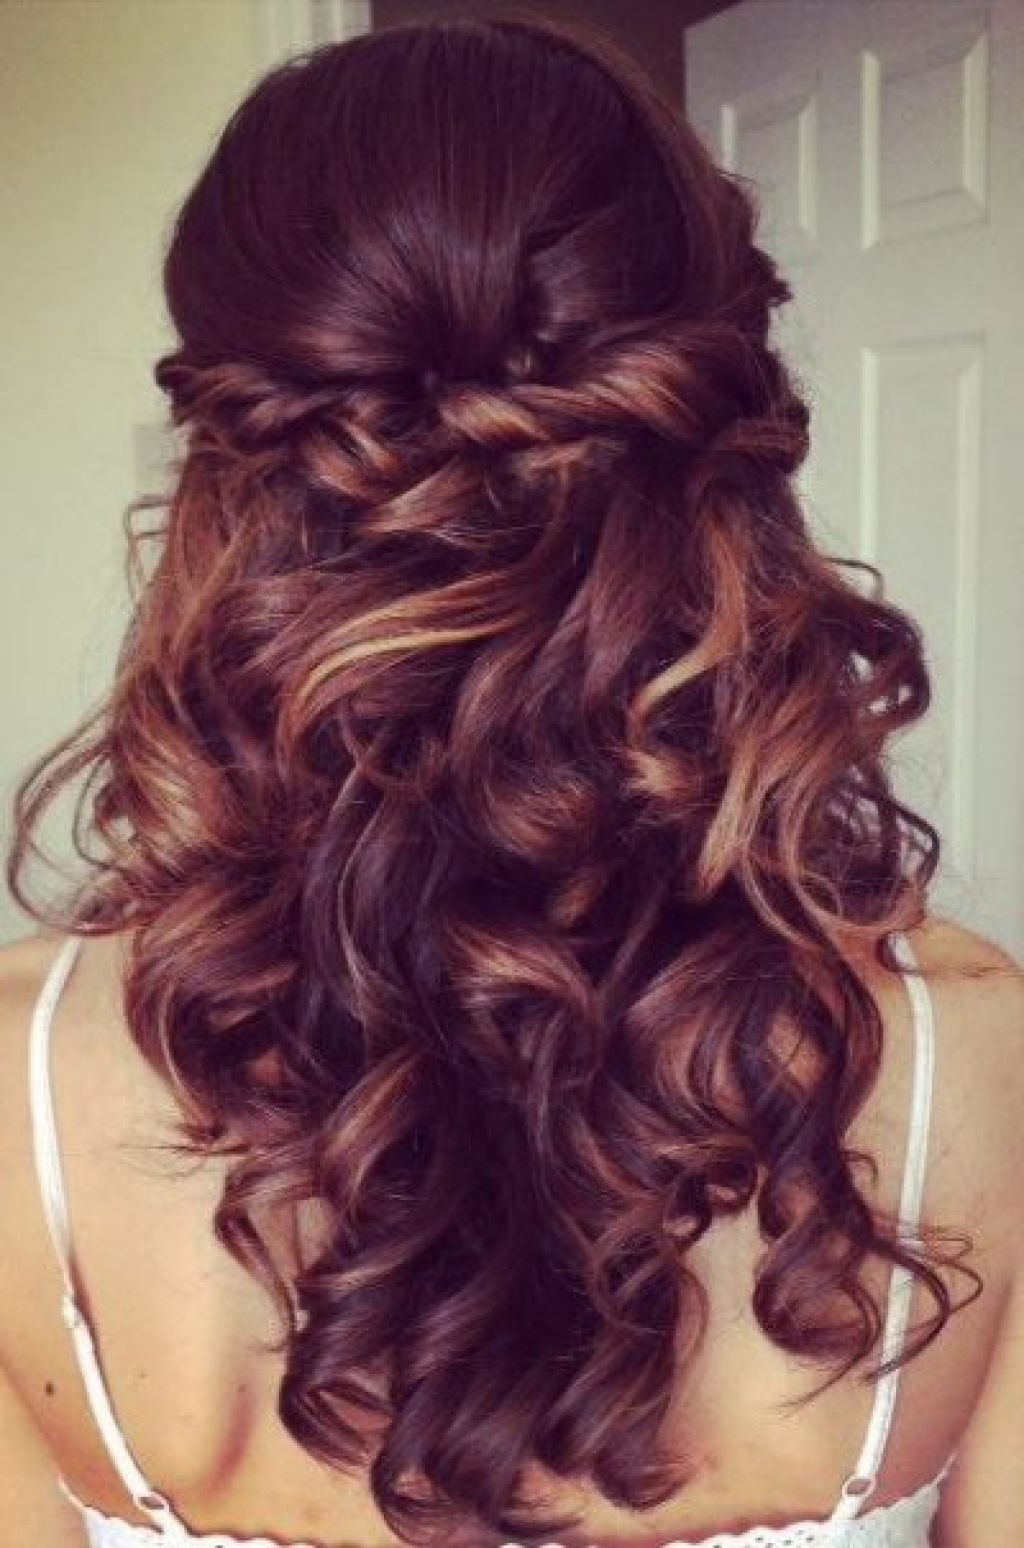 2020 Curled Half Up Hairstyles Inside Curly Hairstyle : Curly Hair Updo For Wedding Guest Short (View 2 of 20)